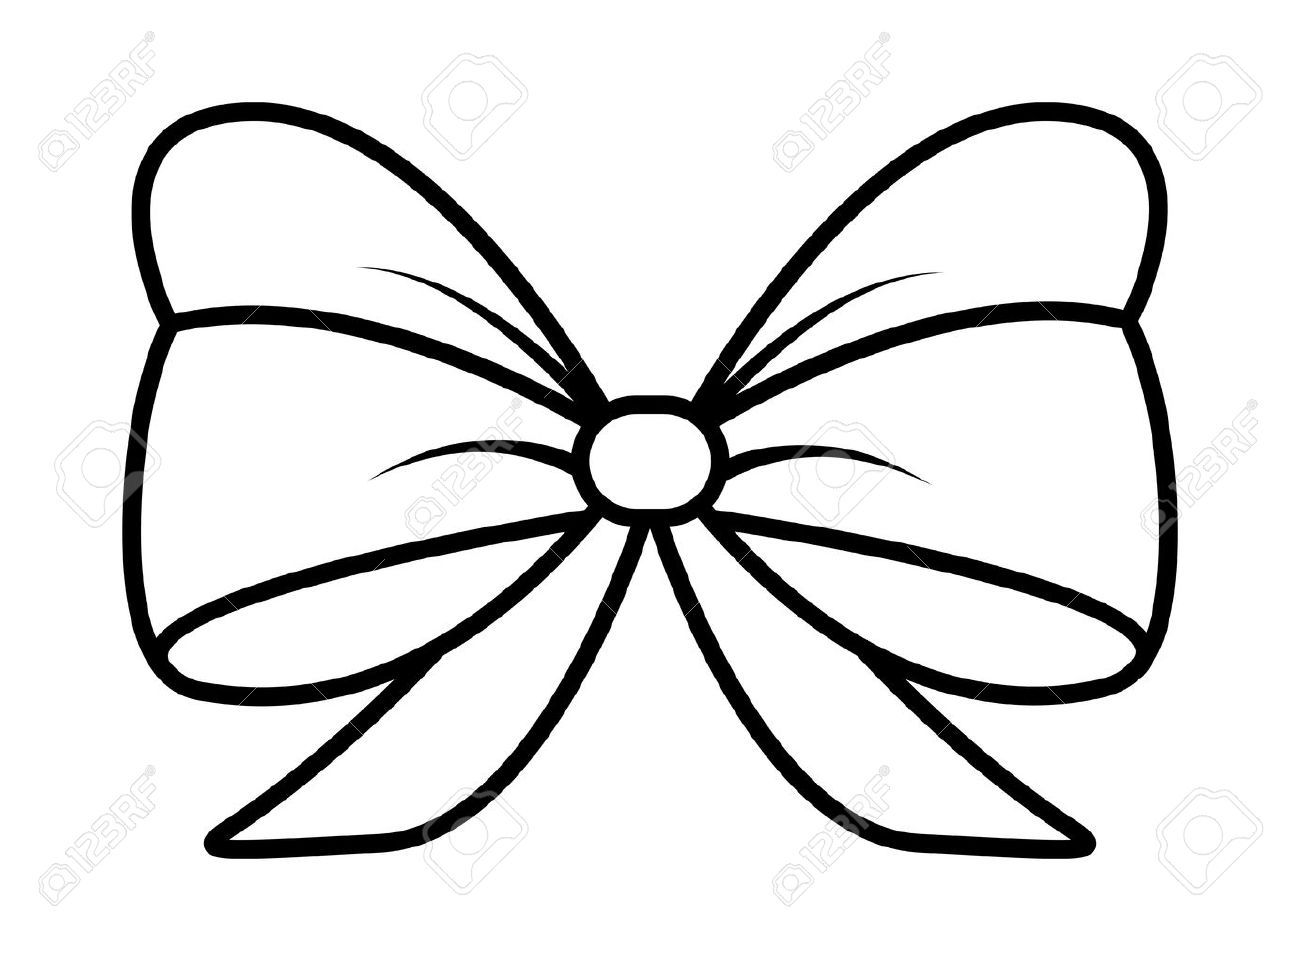 Ribbon bow clipart black and white picture black and white download Ribbon bow clipart black and white 5 » Clipart Portal picture black and white download